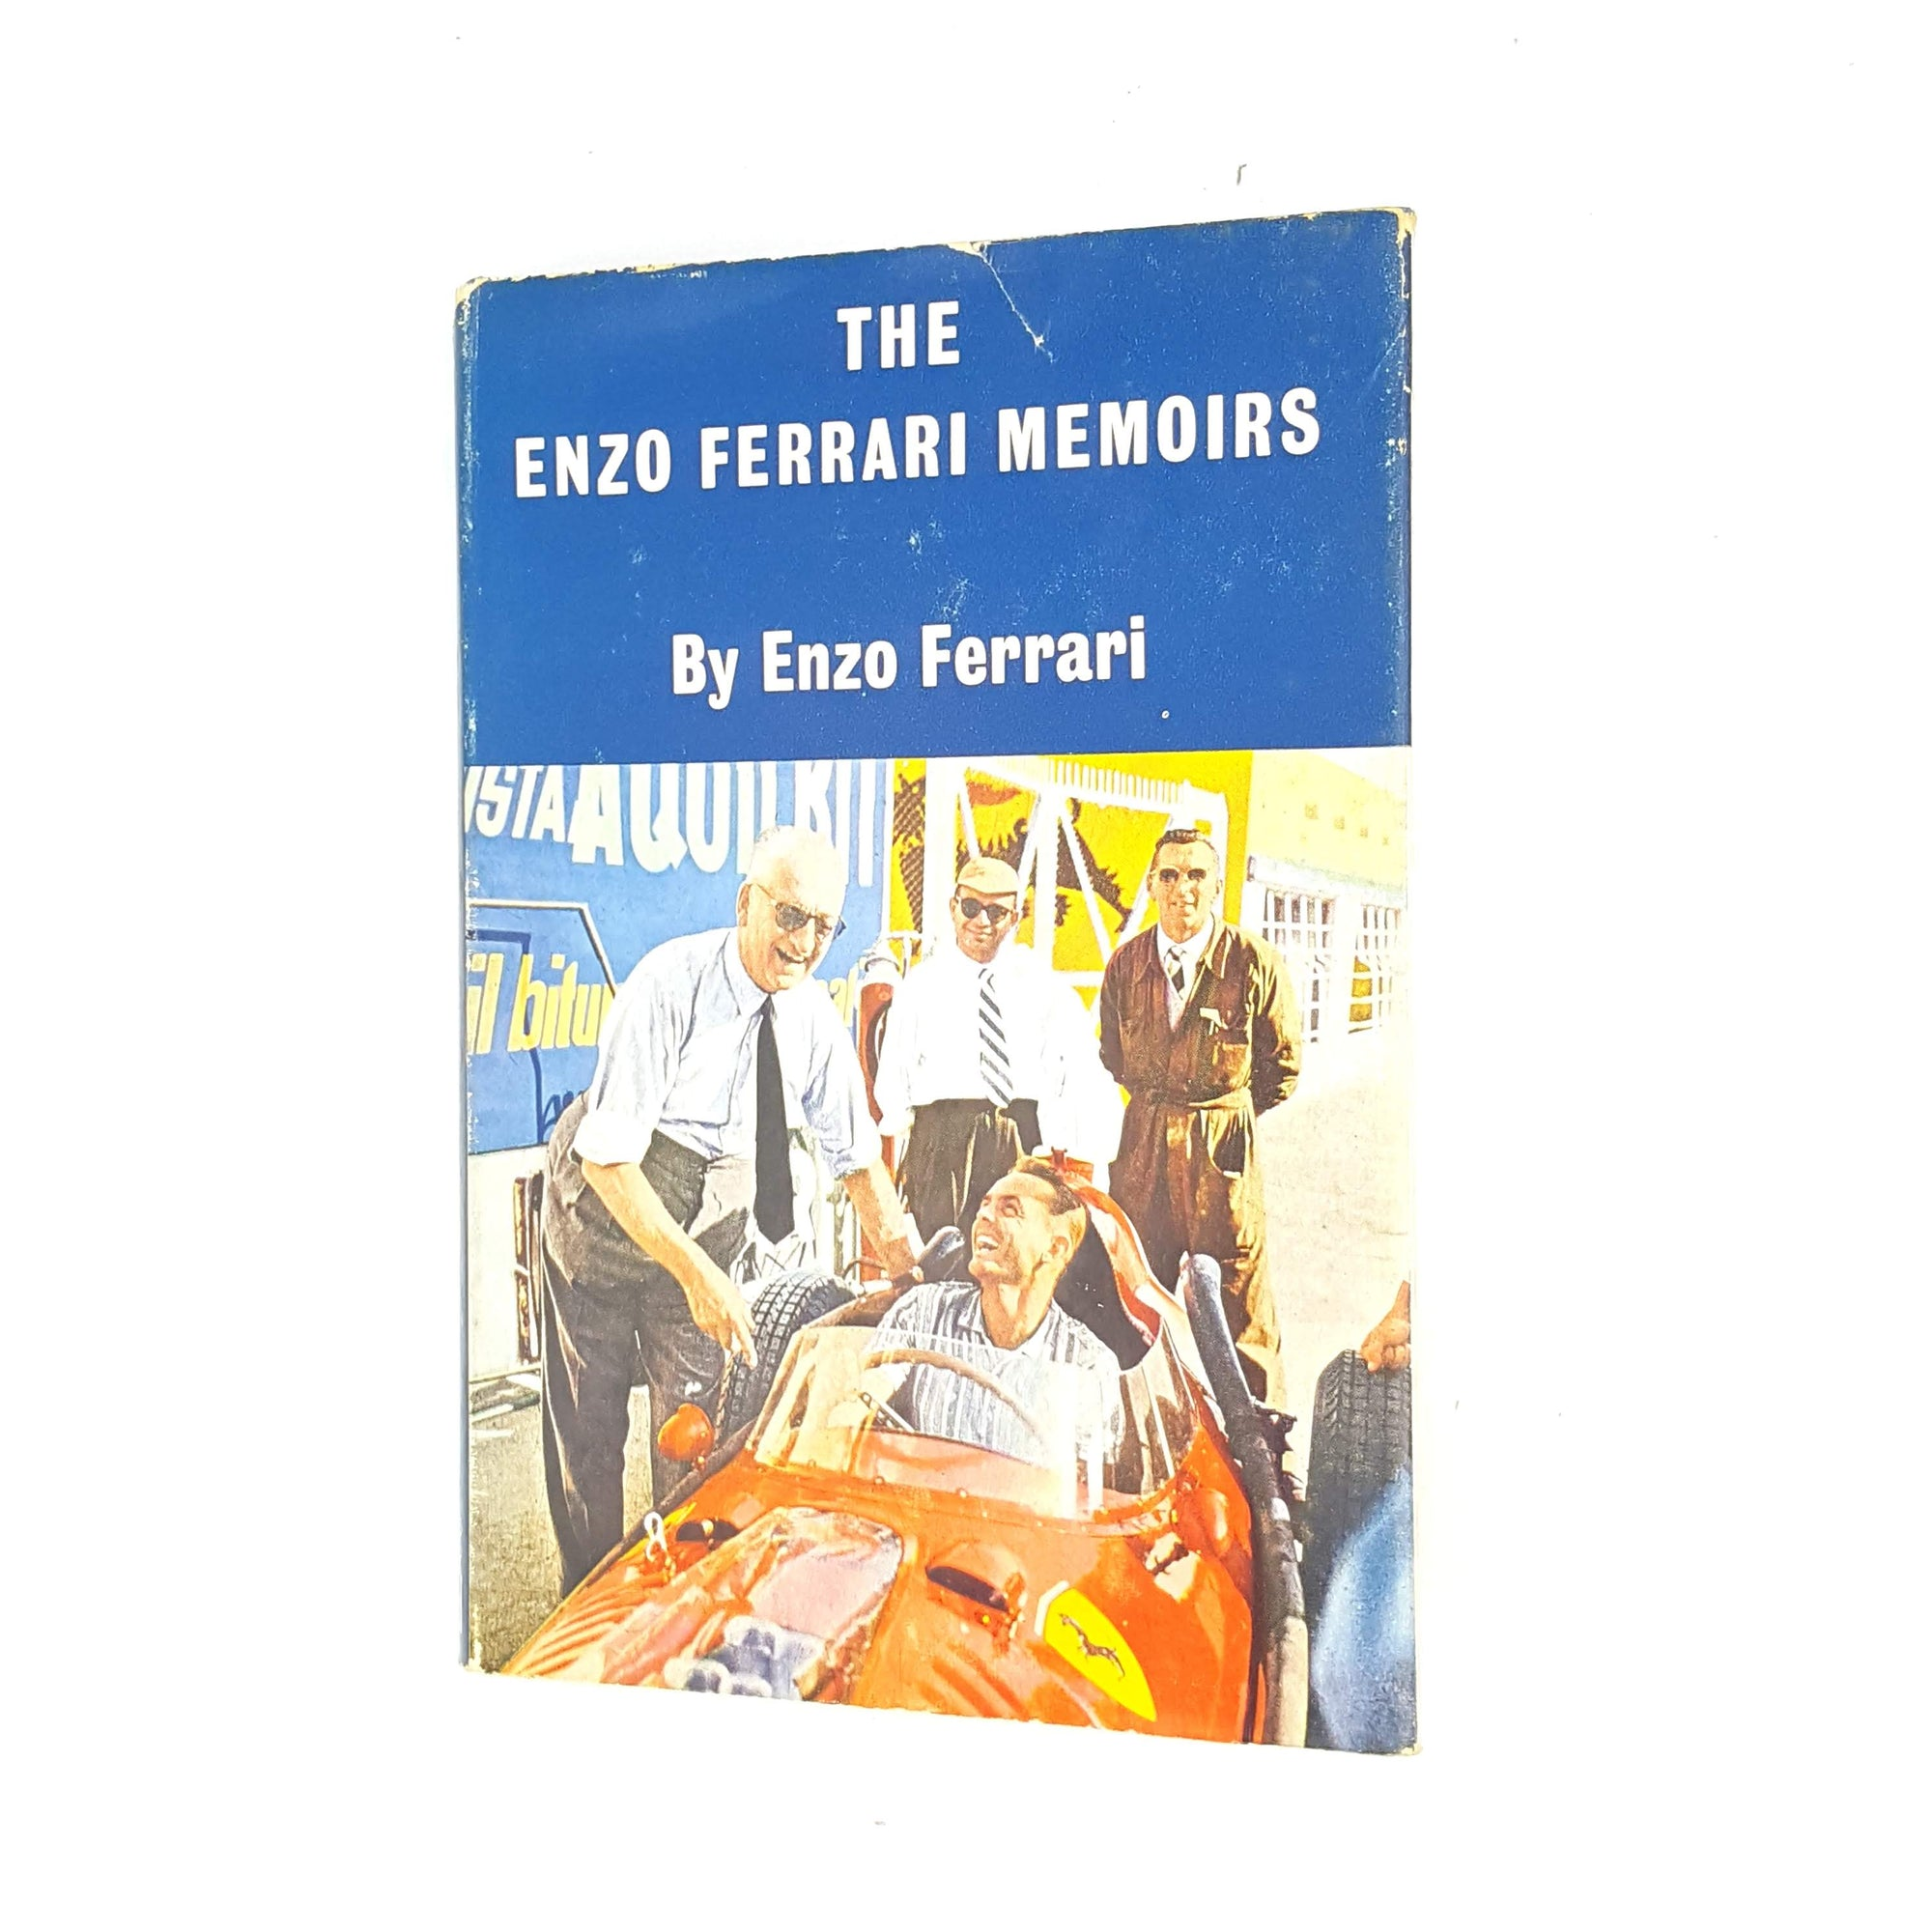 The Enzo Ferrari Memoirs by Enzo Farrari